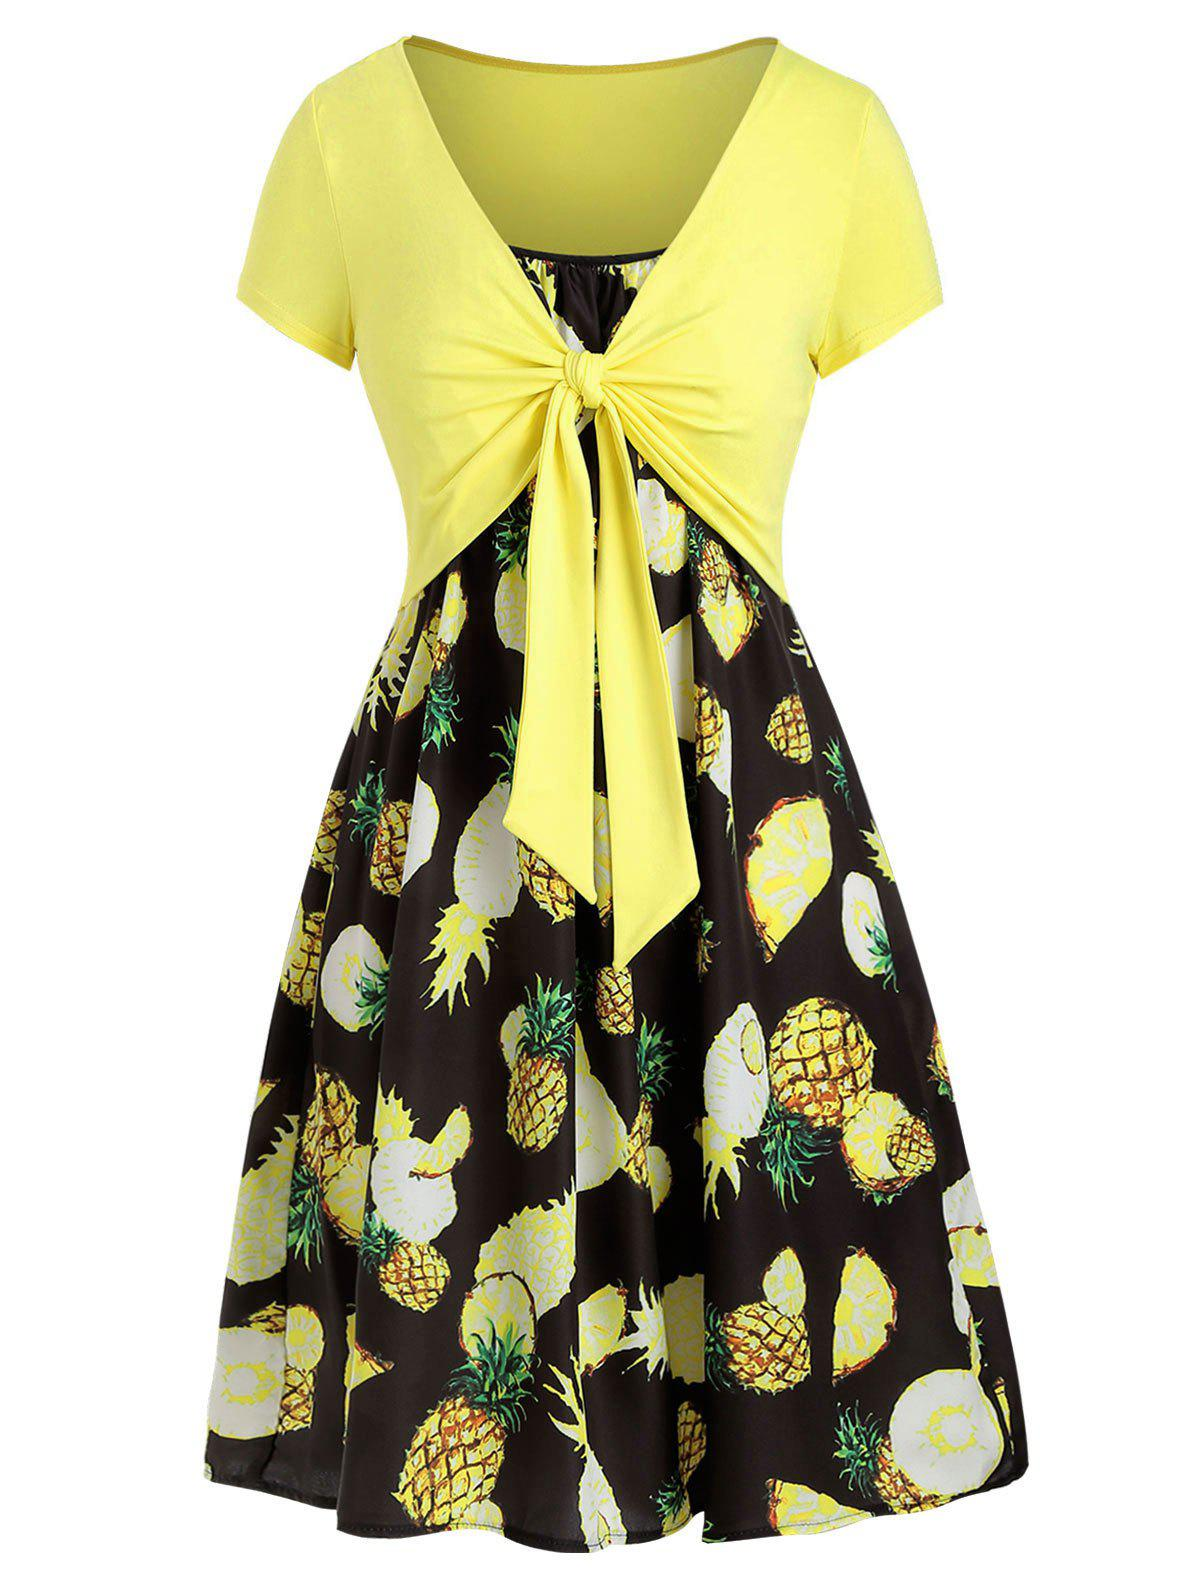 Fashion Cami Pineapple Dress with T-shirt